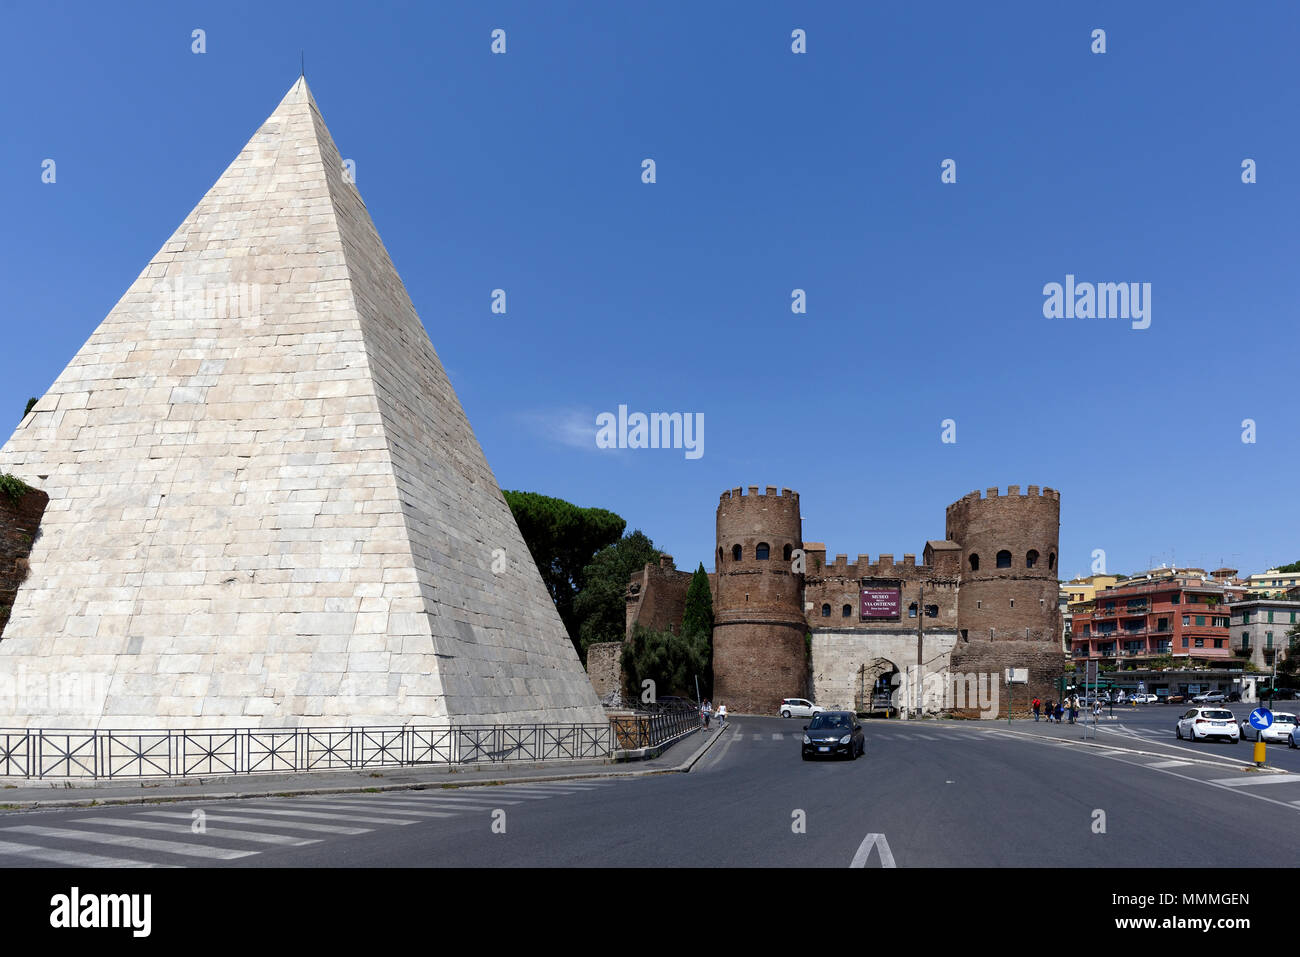 The Pyramid of Caius Cestius and the twin towered Porta San Paolo in the Rome neighbourhood of Testaccio. The Pyramid (Piramide di Caio Cestio) was bu Stock Photo